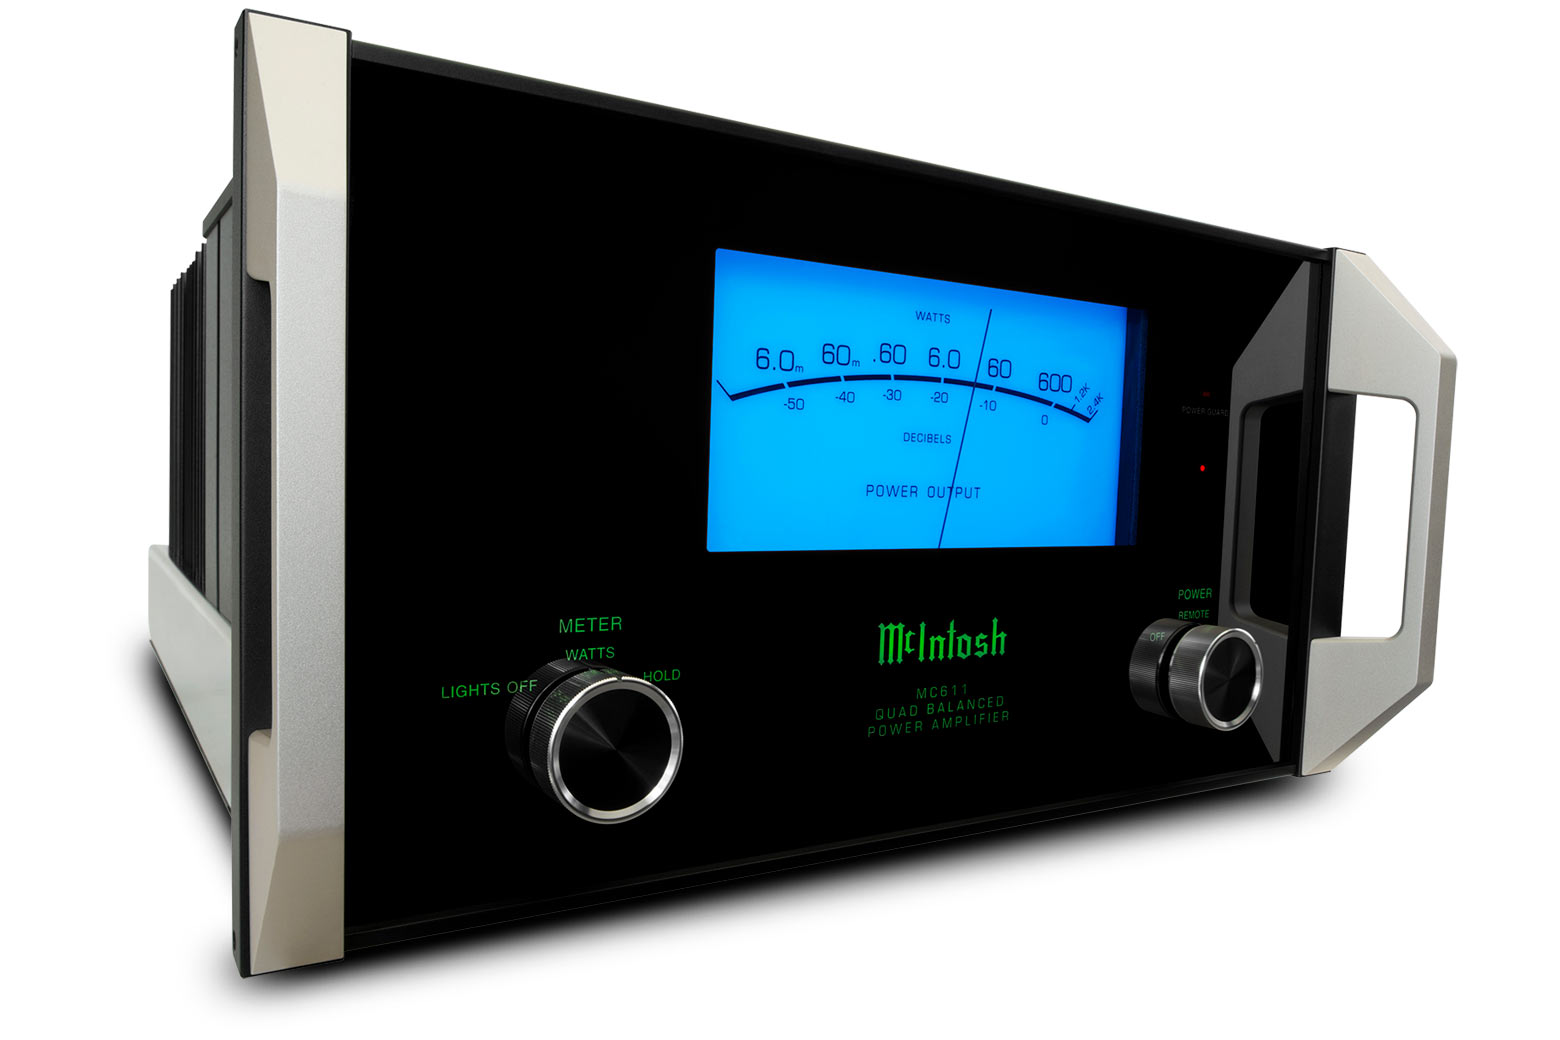 Mcintosh Mc611 Amplifier At Amp T Wireless Home Phone Network Diagram